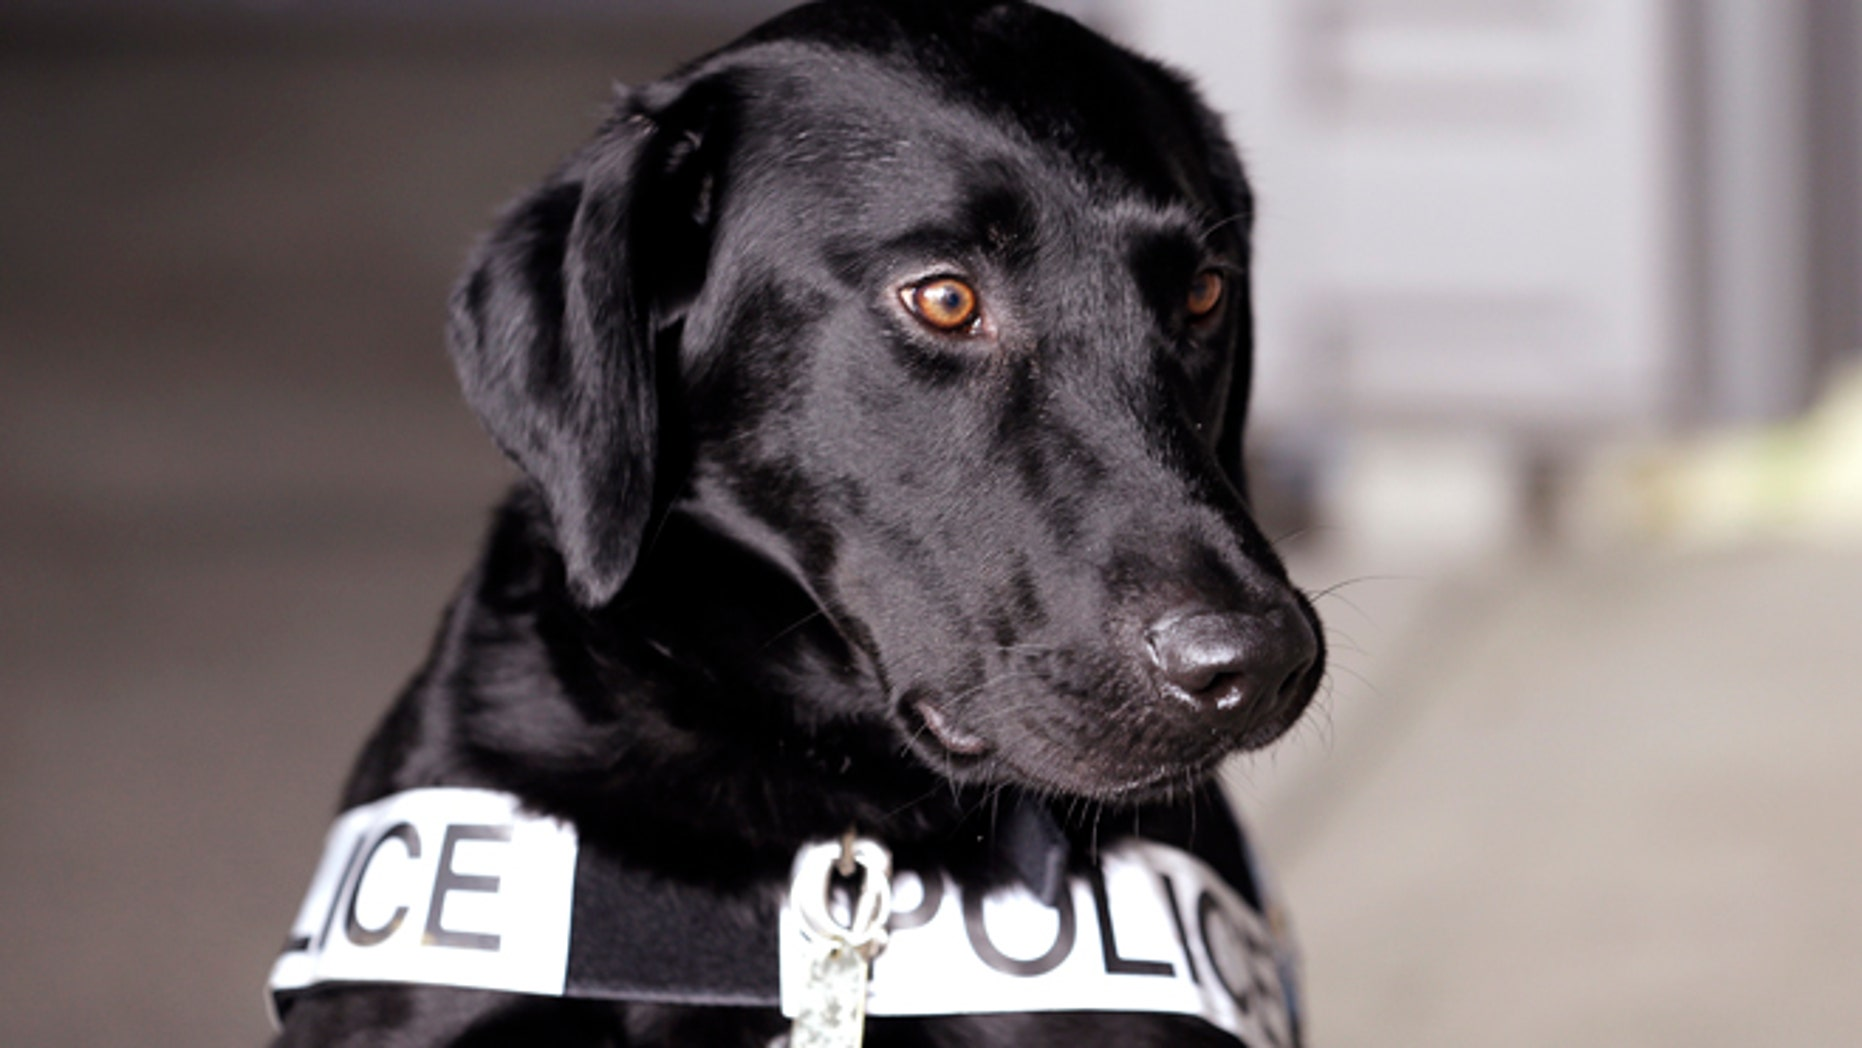 May 30, 2013: A drug-sniffing police dog is shown at a training session at a police station in Bremerton, Wash.